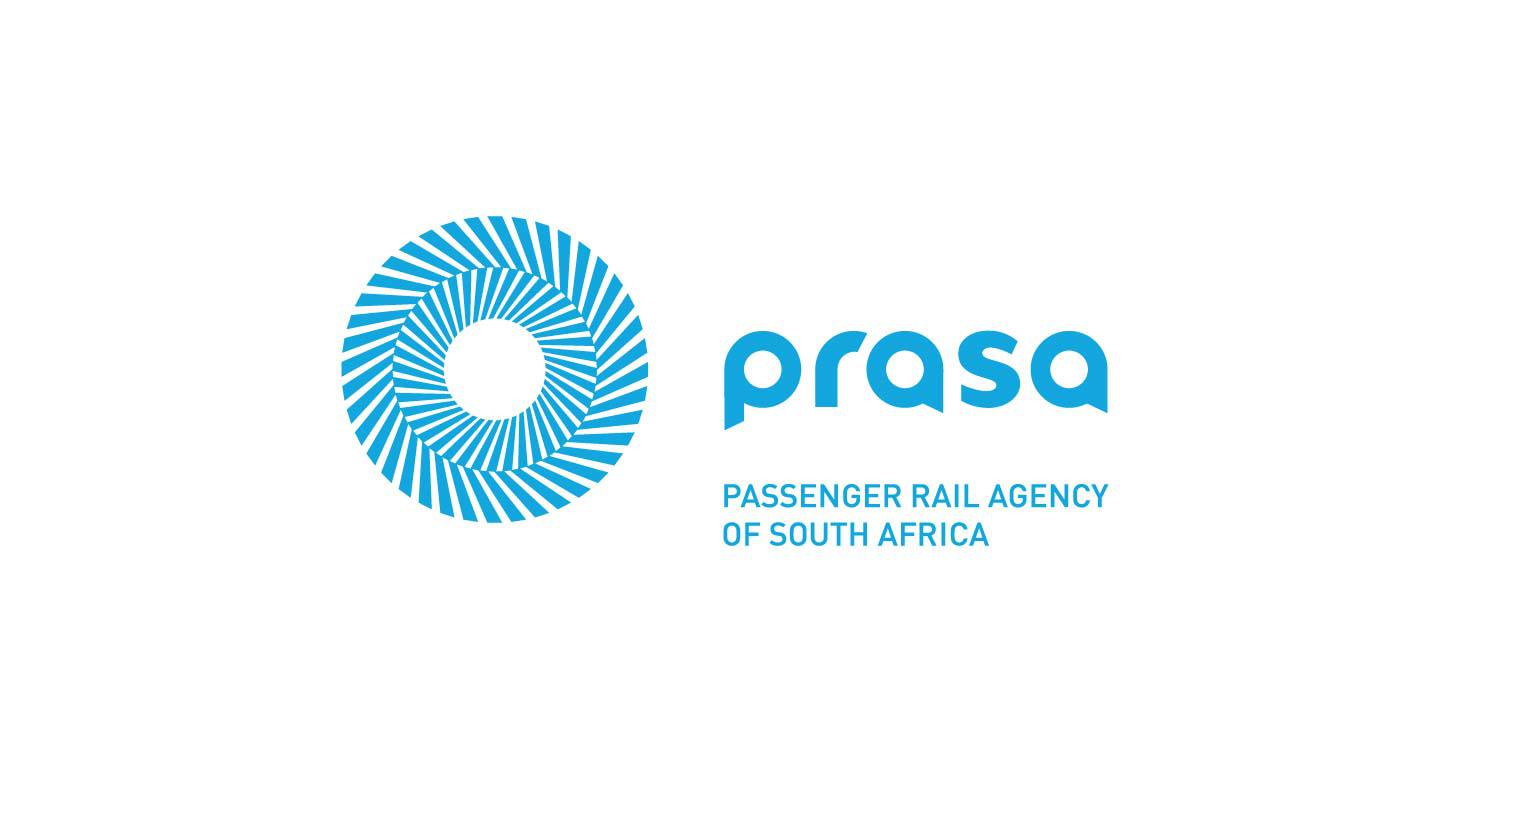 PRASA ADMINISTRATOR TEAM WIDENS NET OF ENGAGEMENT IN THE WESTERN CAPE